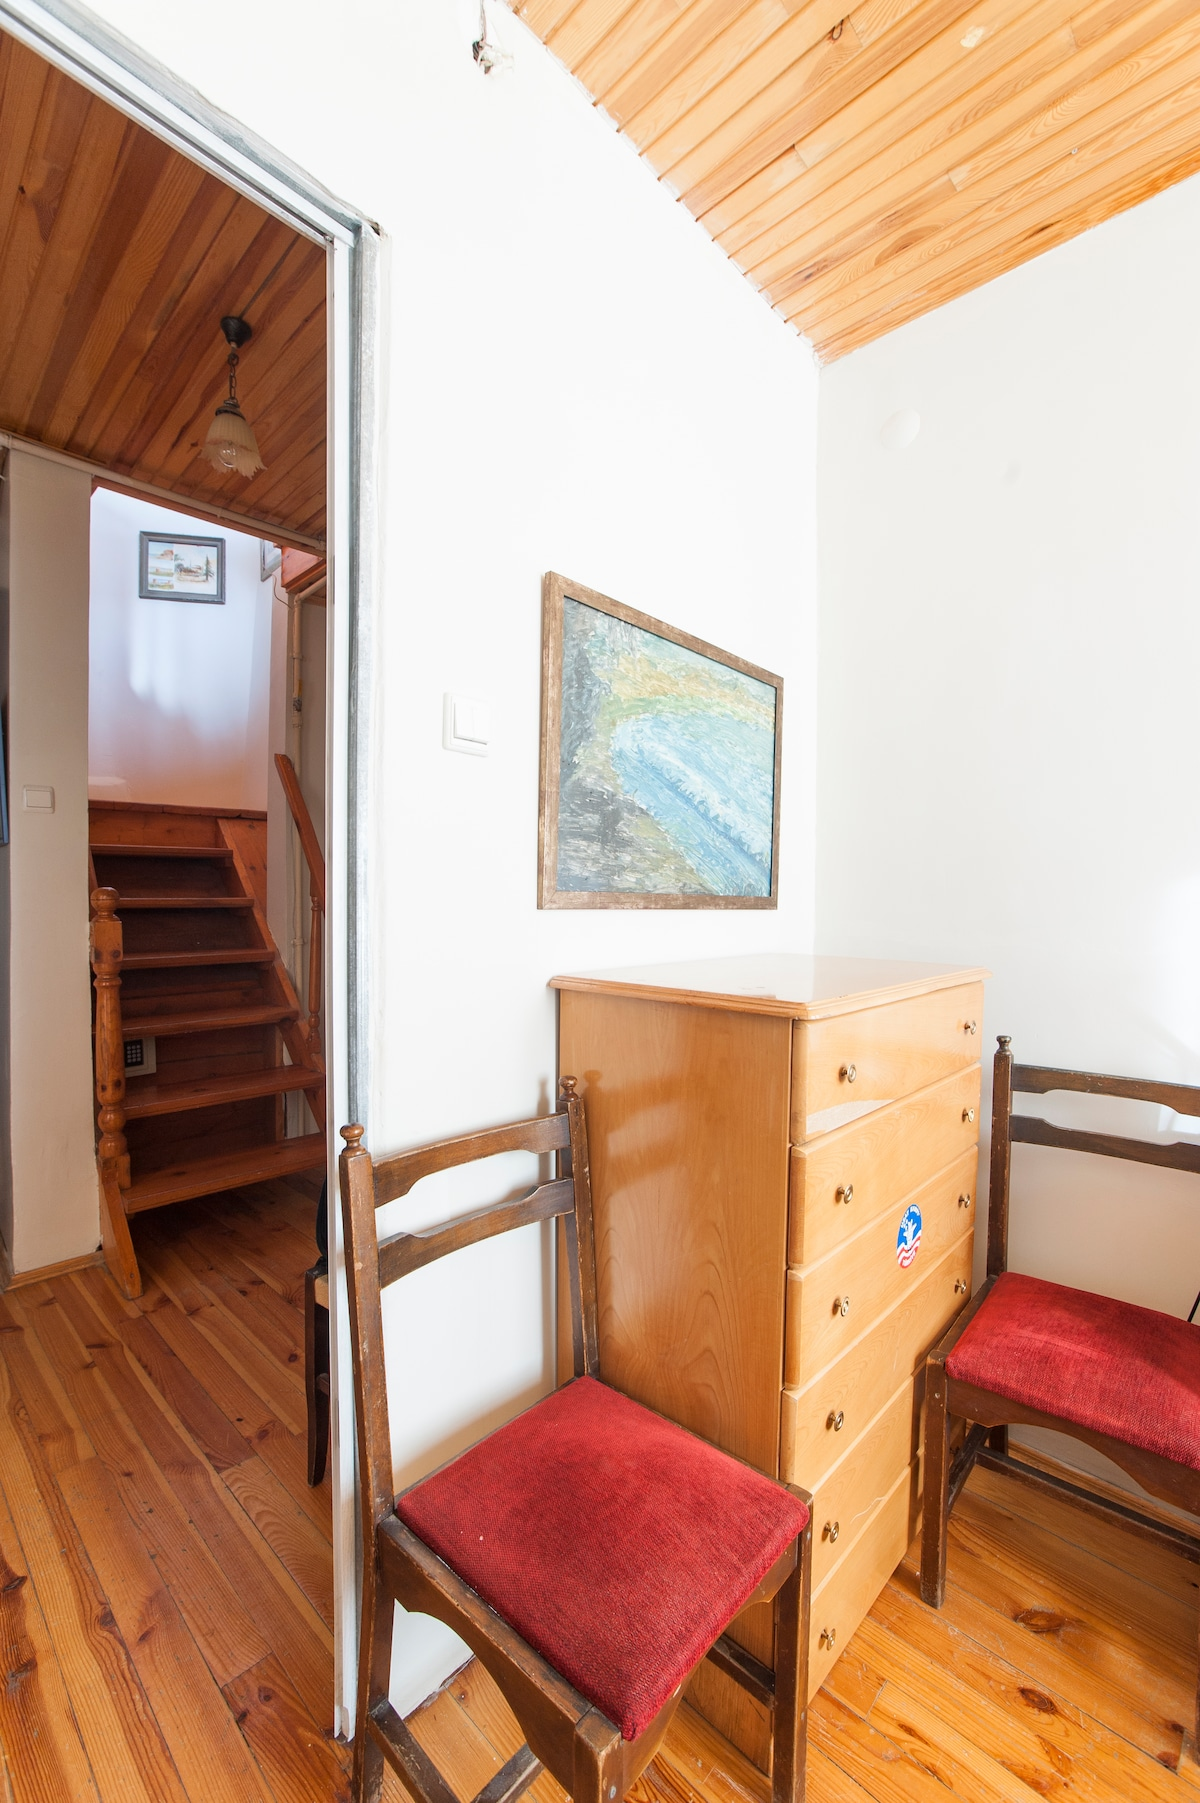 Taksim Budget Two-Bedroom Apartment